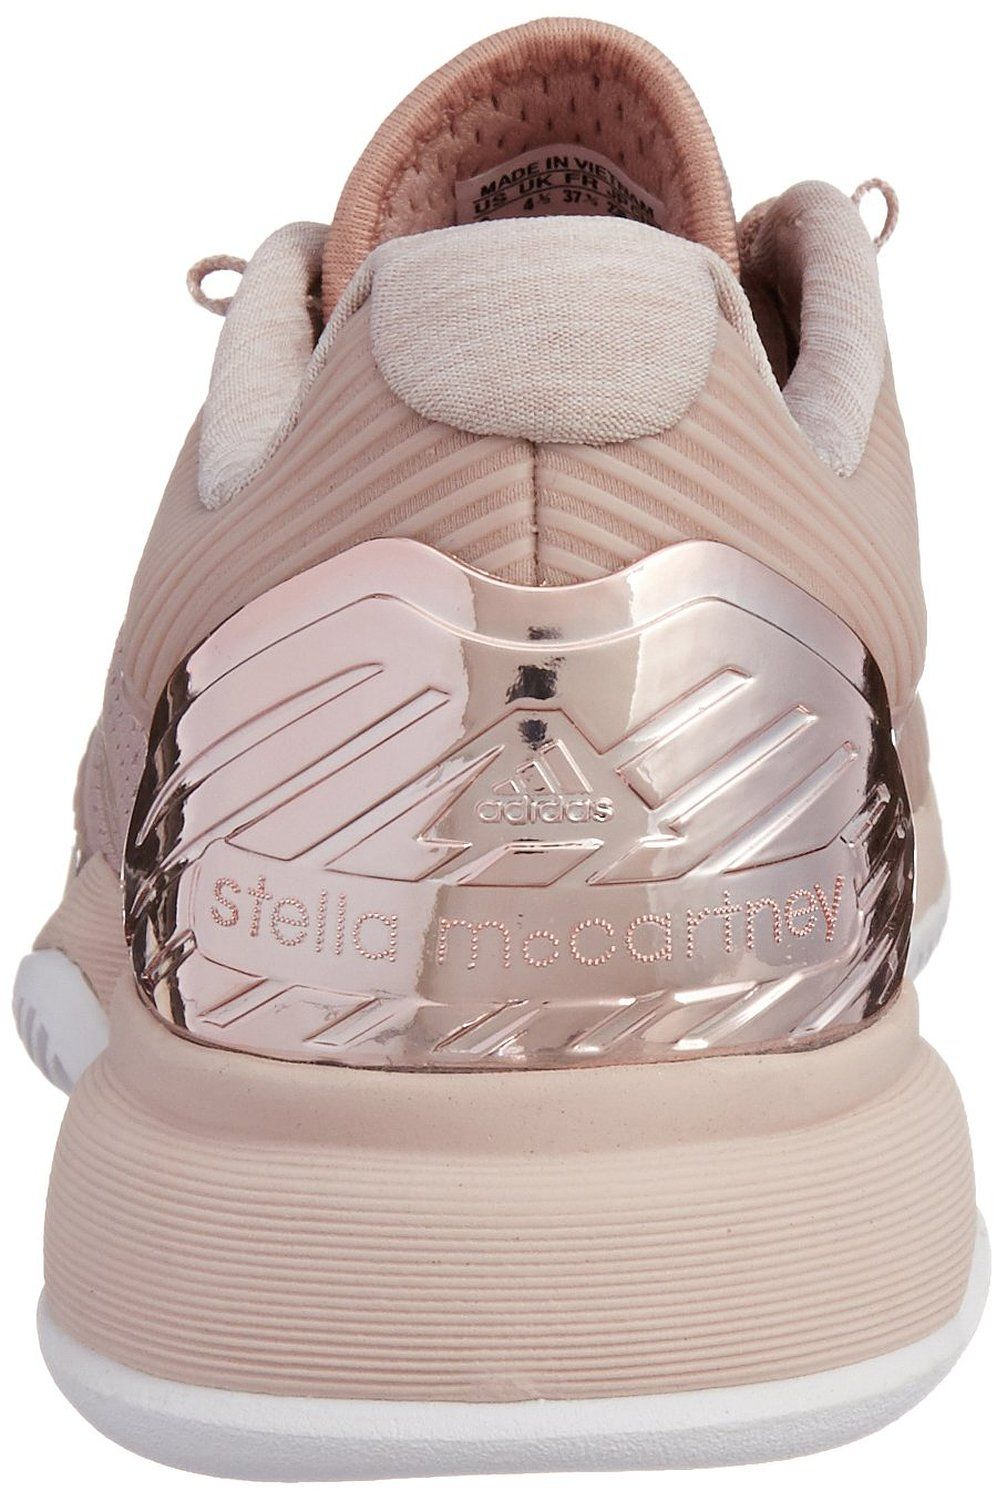 newest edf20 921bc adidas Stella McCartney Barricade Ladies Tennis Shoe, Light Pink, UK8  Amazon.co.uk Shoes  Bags